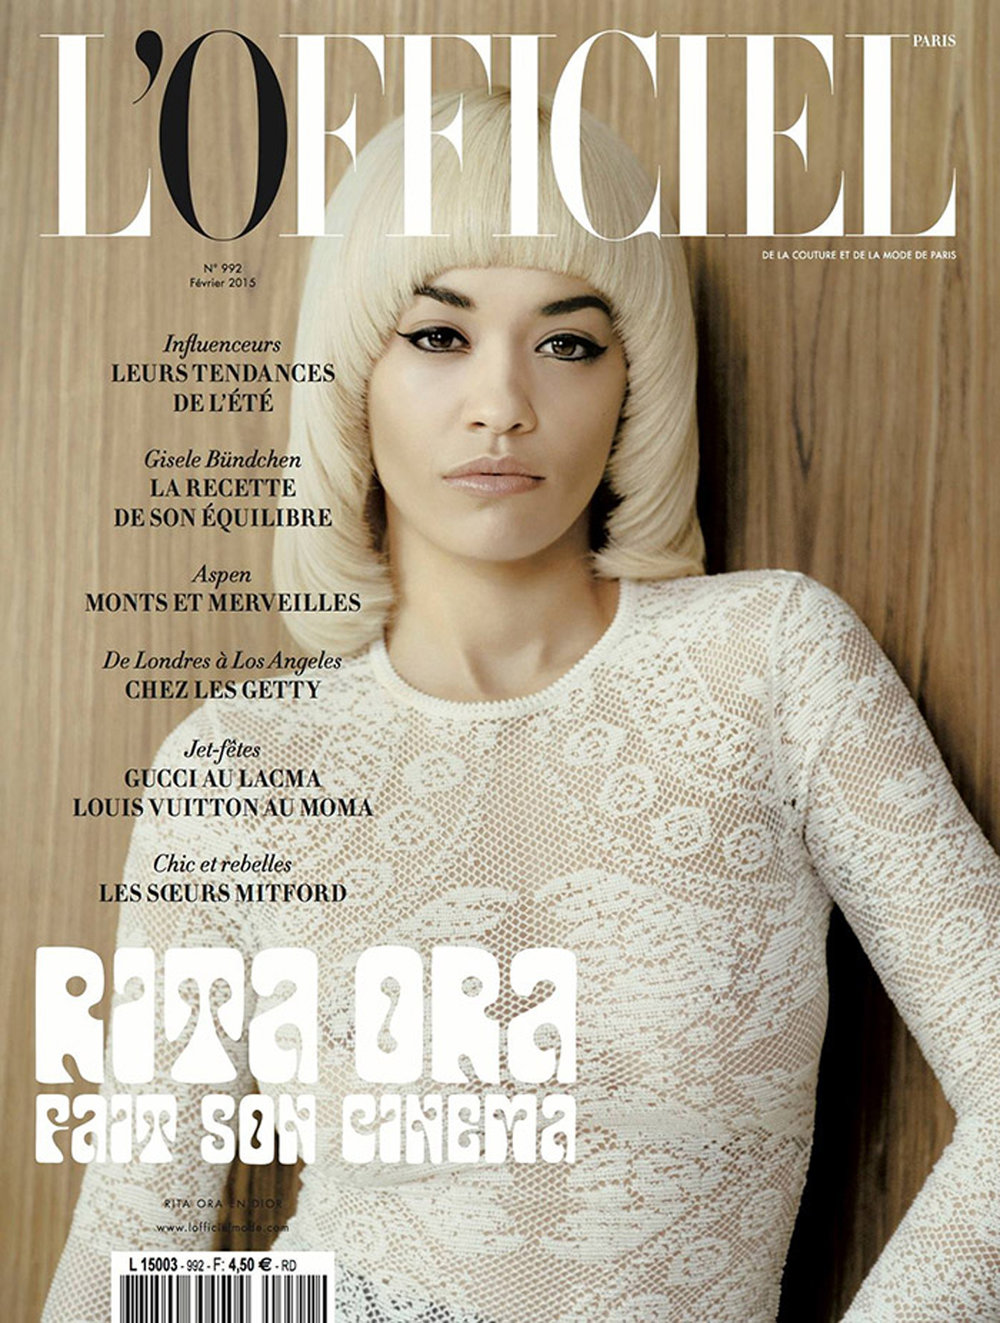 rita-ora-lofficiel-paris-february-2015-cover.jpg